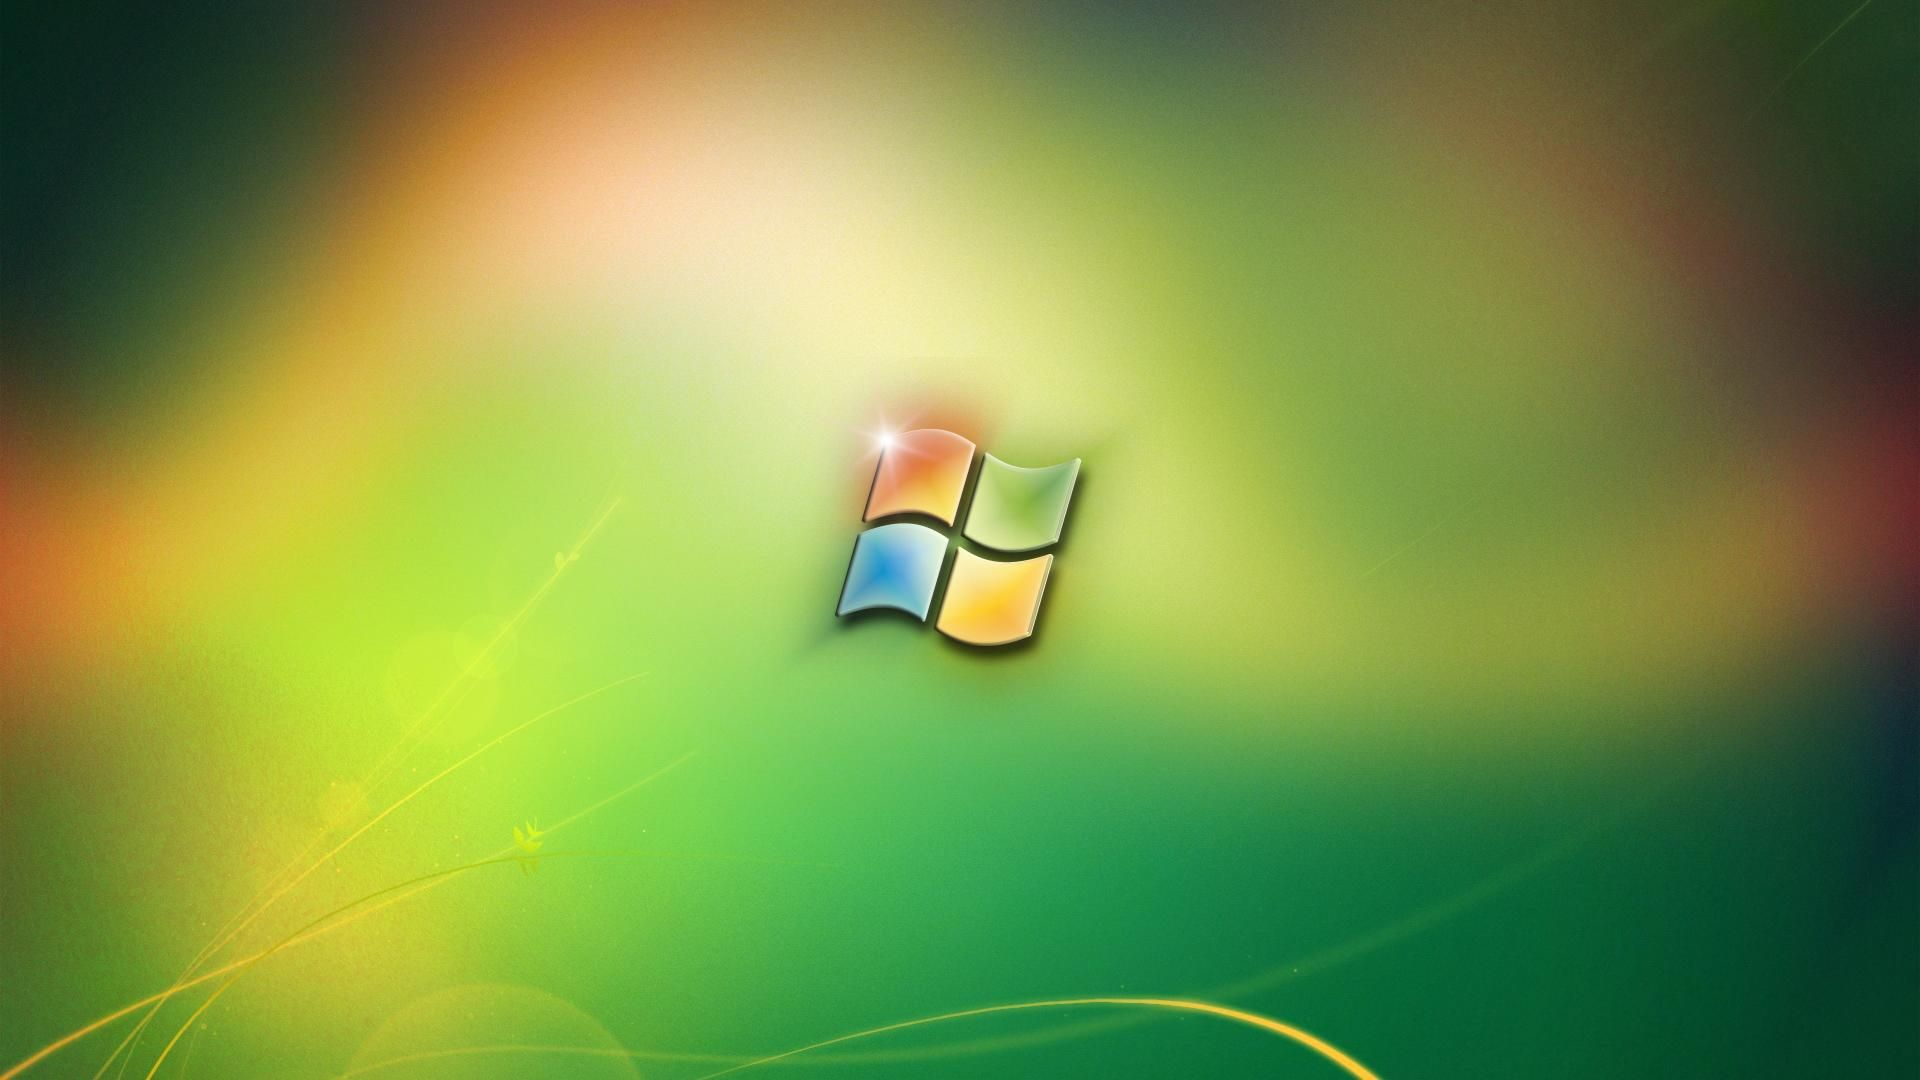 windows xp wallpapershd wallpapers 1920a—1200 xp hd wallpapers 68 wallpapers adorable